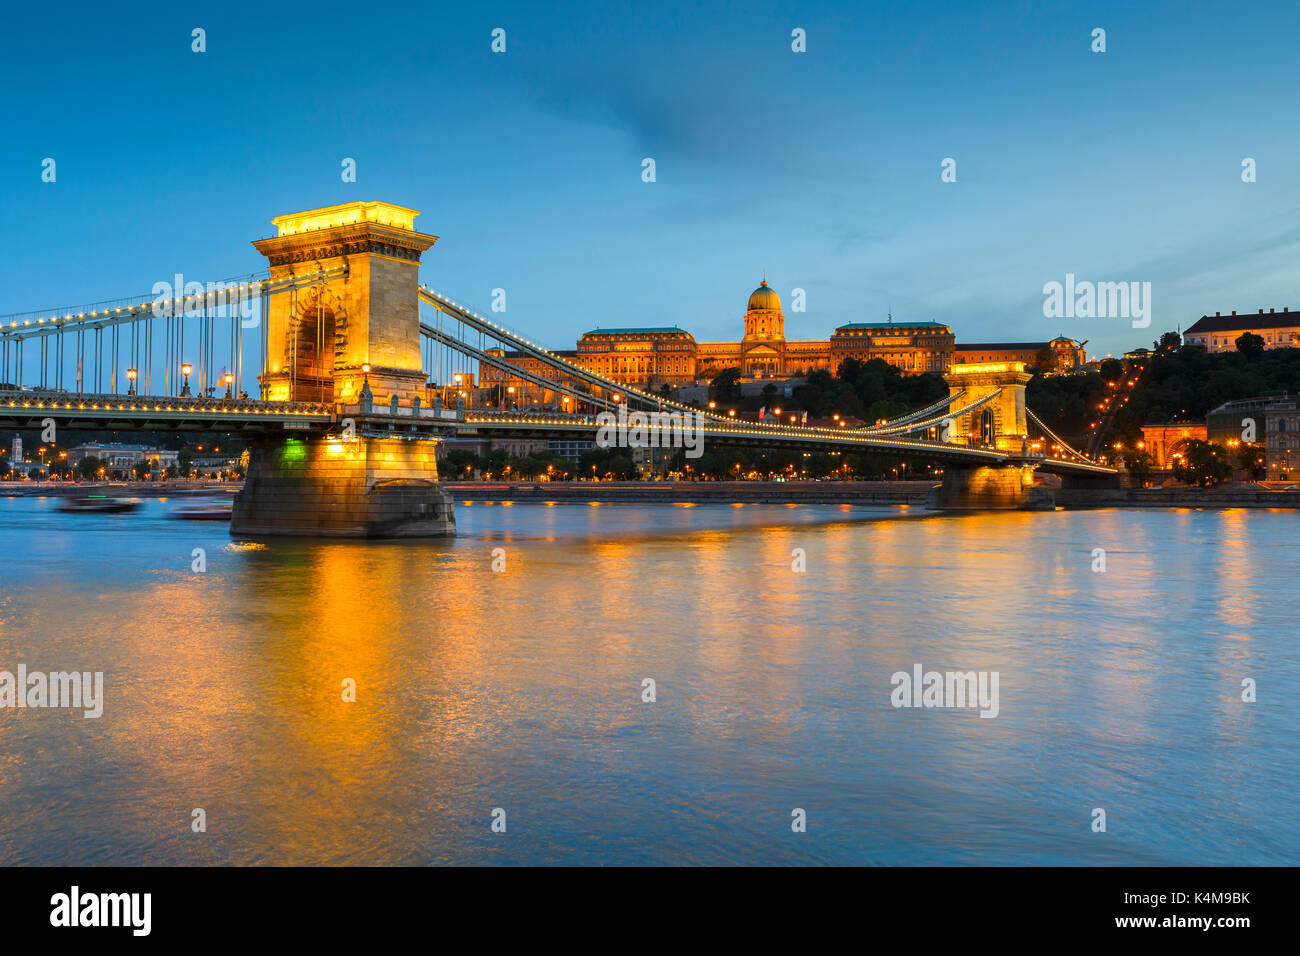 Evening view of Buda castle of Budapest, Hungary. - Stock Image